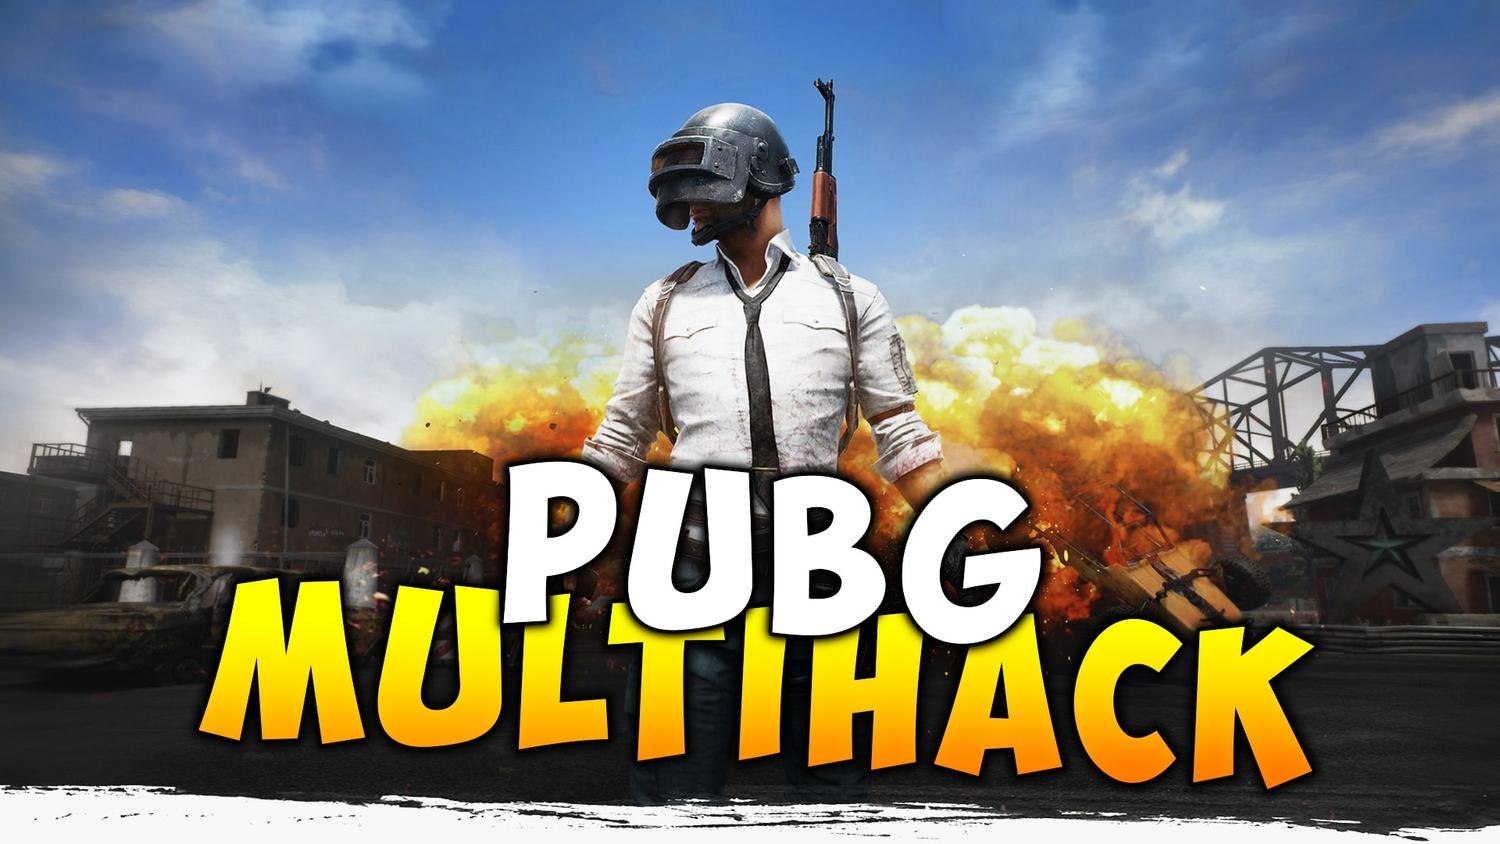 MULTI HACK  for PUBG + MAP HACK&#9989